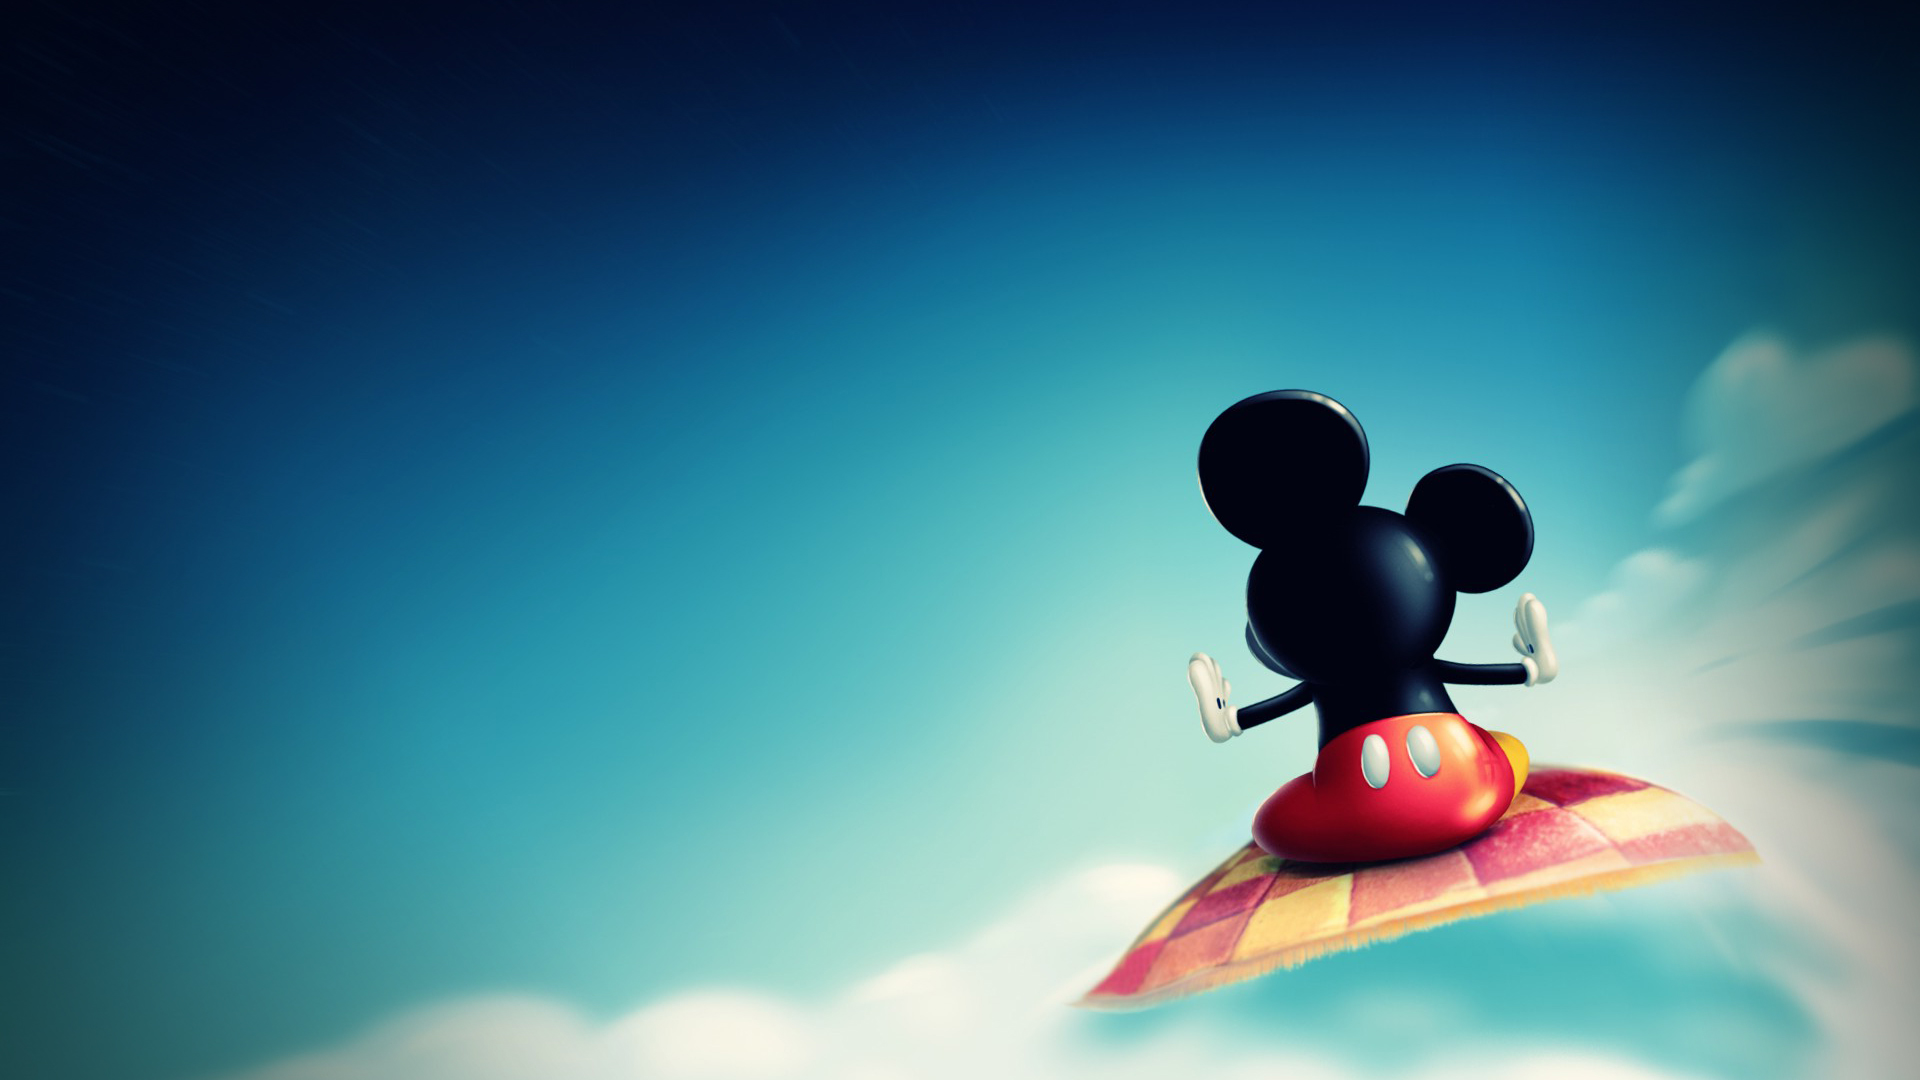 Mickey Mouse hd wallpapers 1920x1080